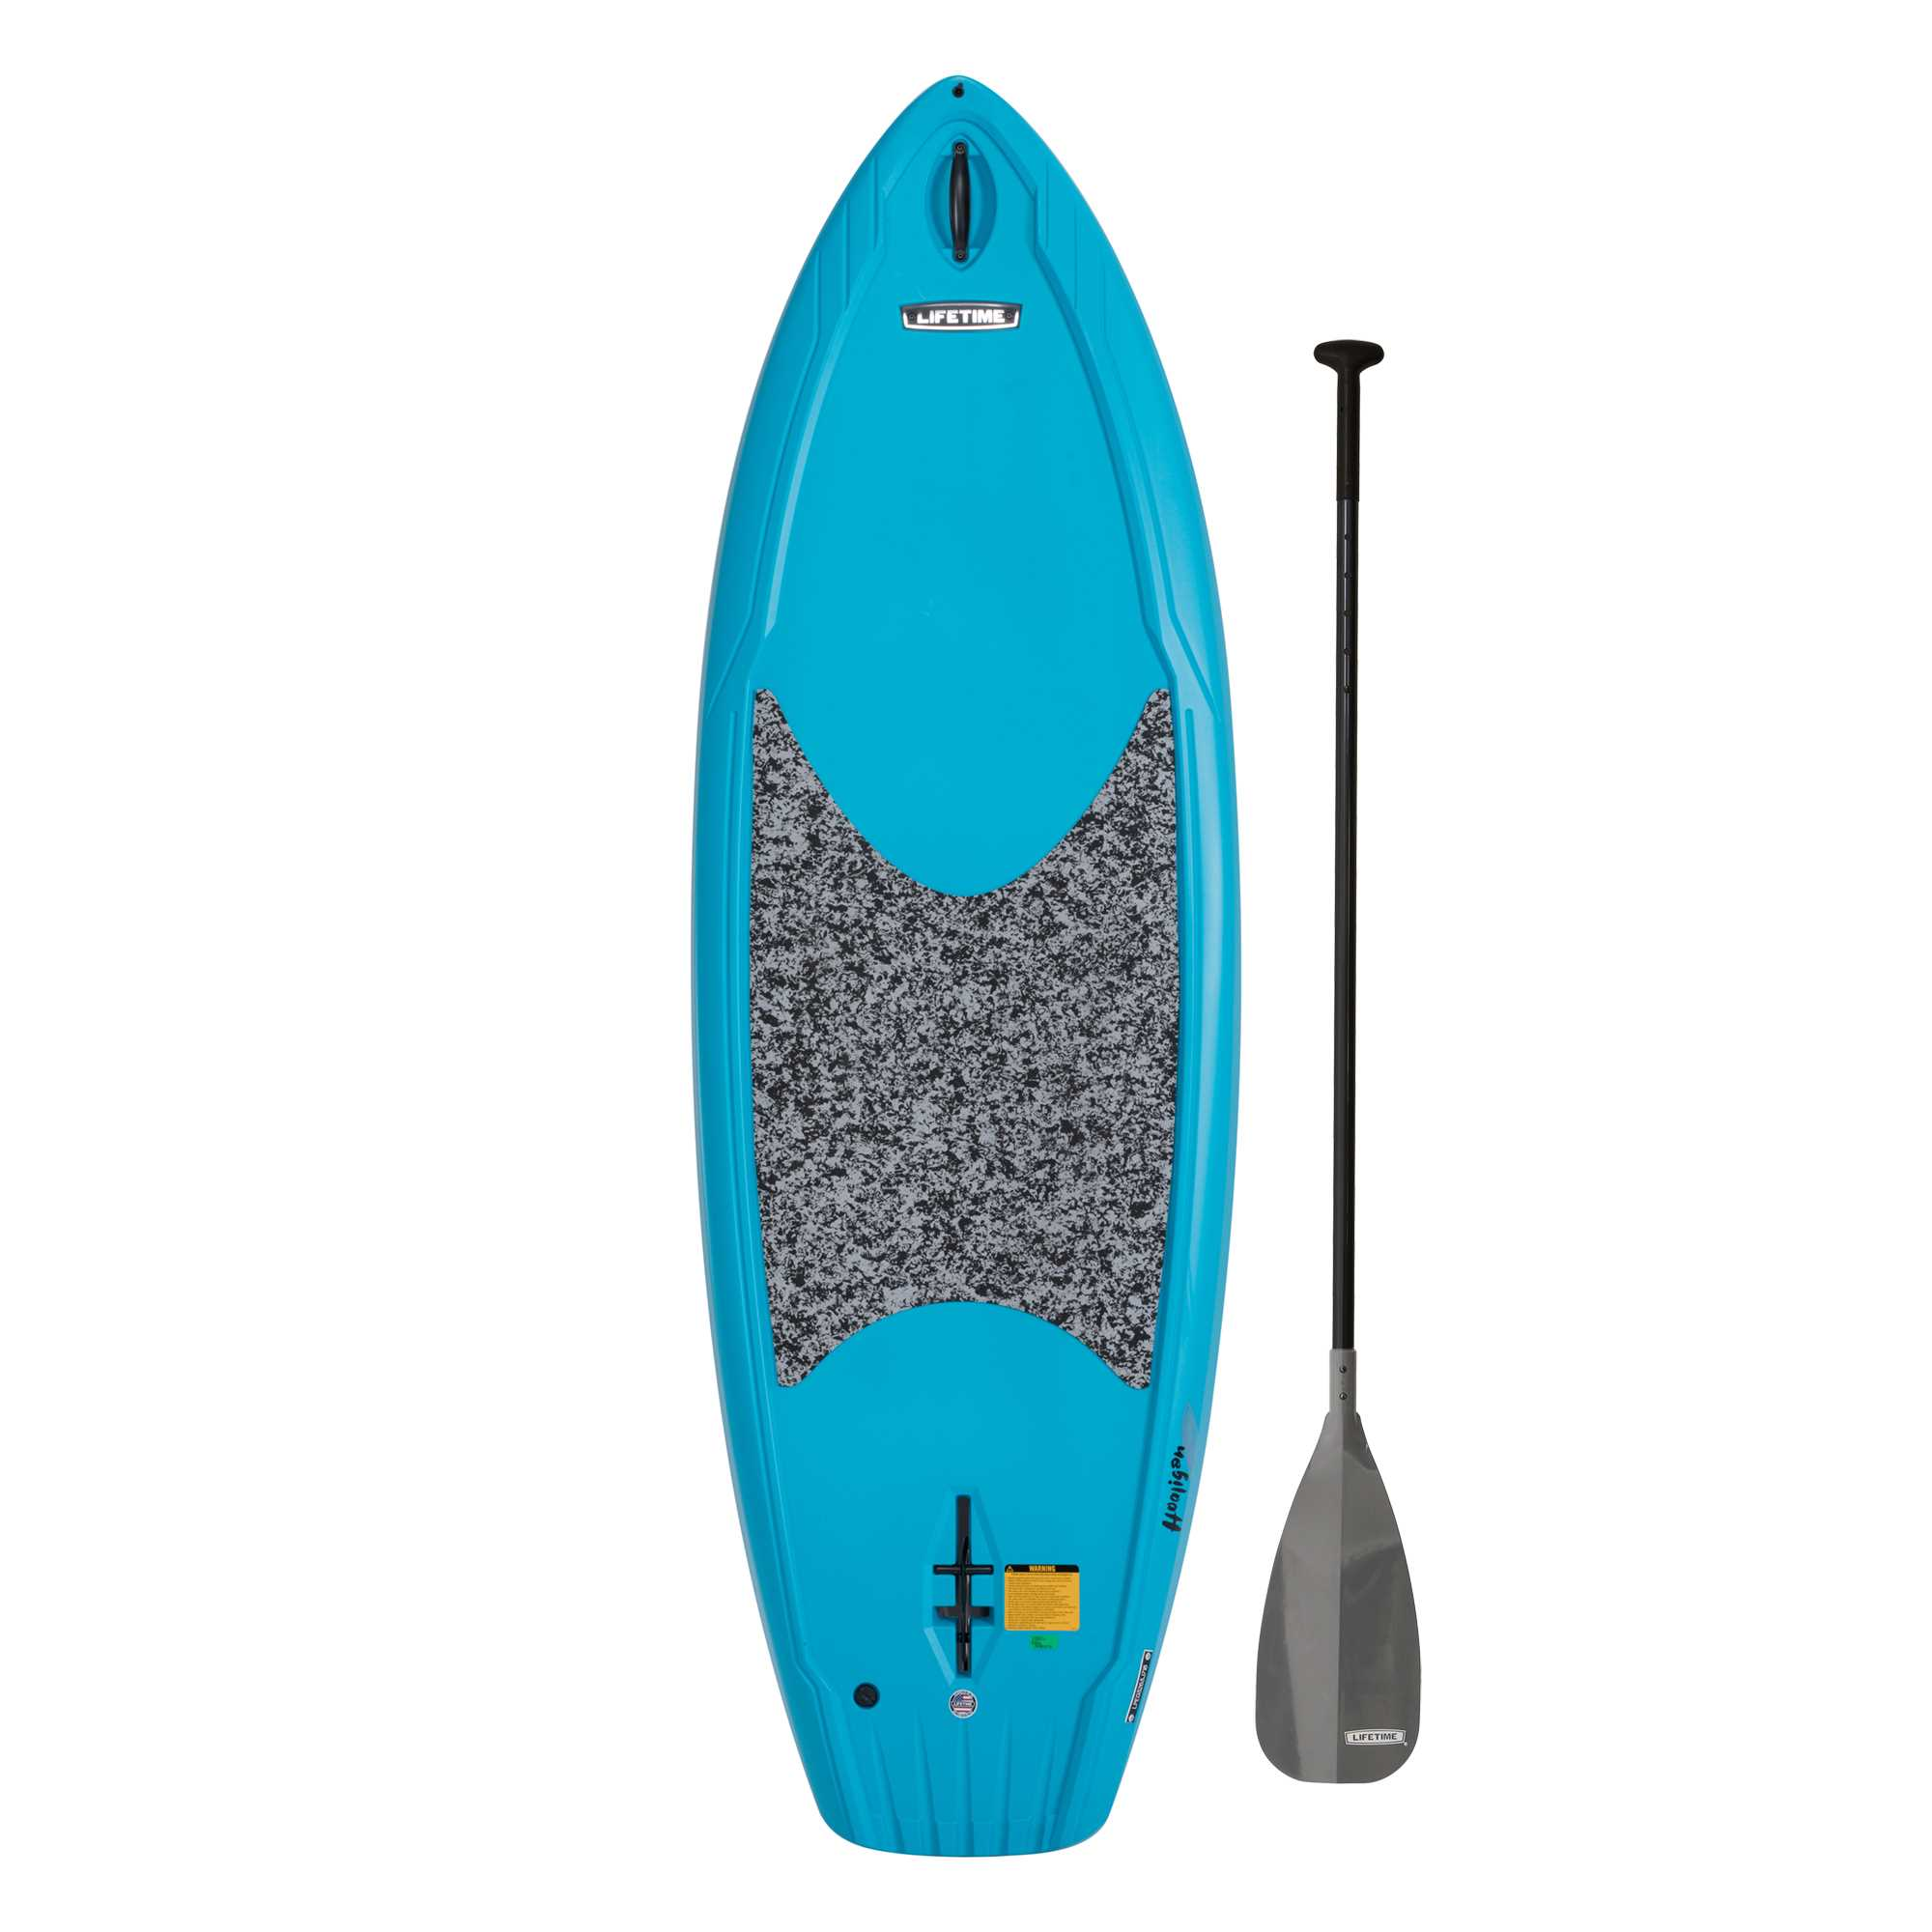 Lifetime Hooligan 80 Youth Stand-Up Paddleboard (Paddle Included), Blue, 90859